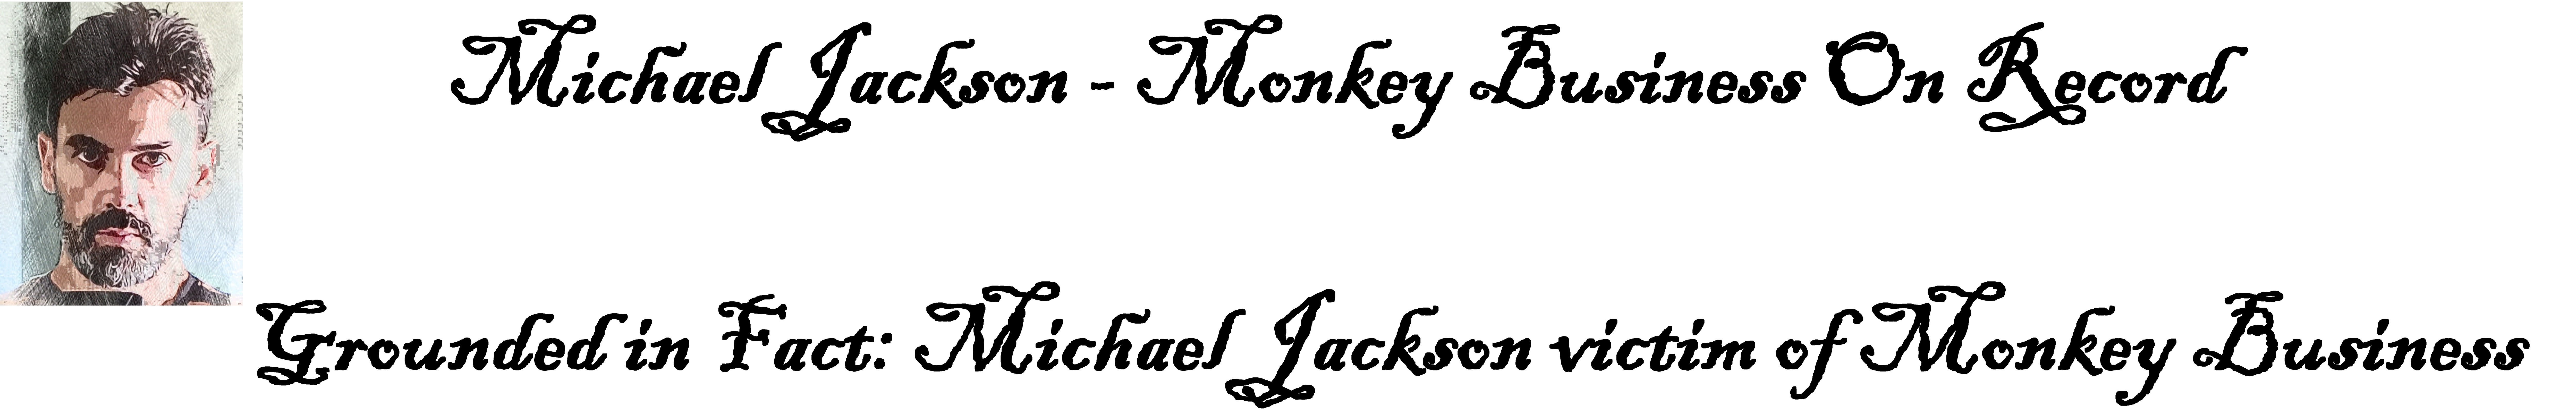 Michael Jackson – Monkey Business On Record